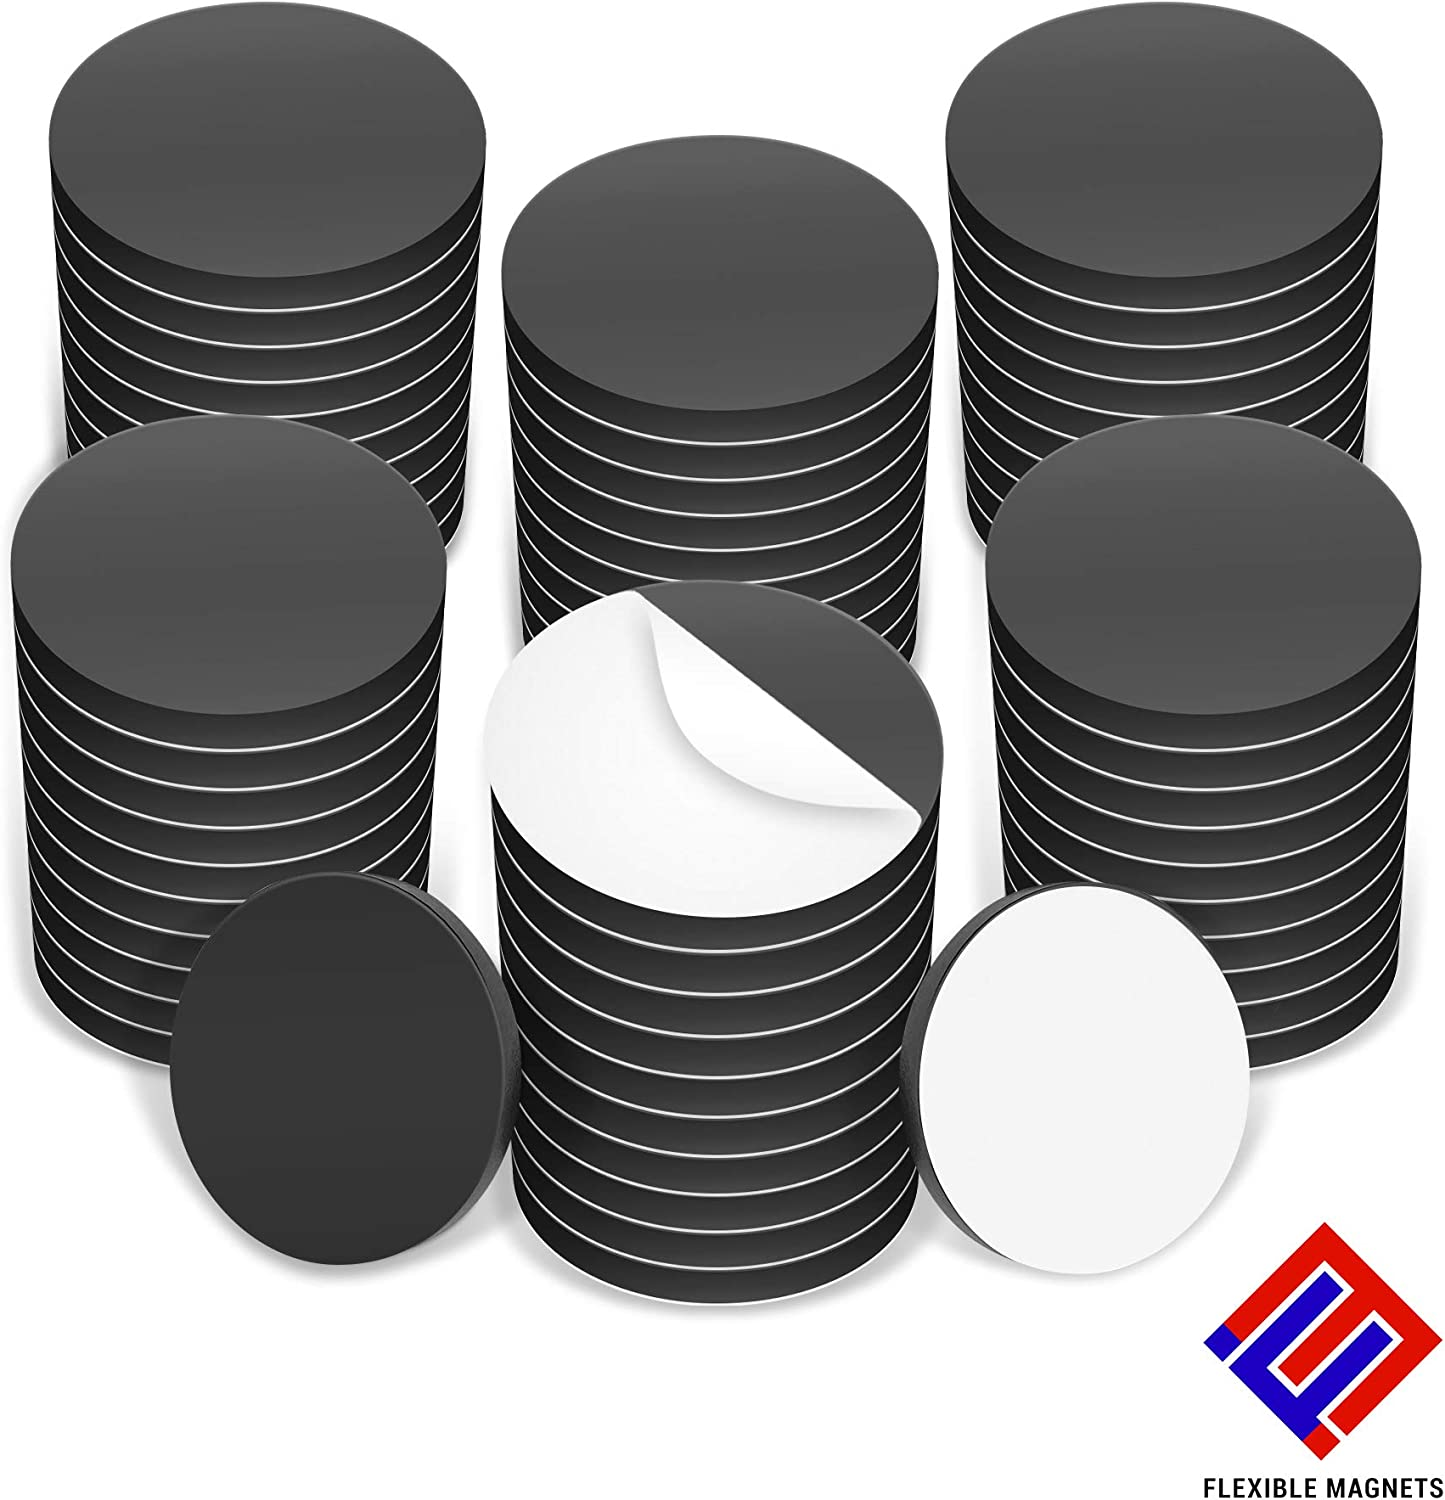 """Flexible Magnets 1"""" Round Disc with Adhesive Backing - 50 Pcs"""